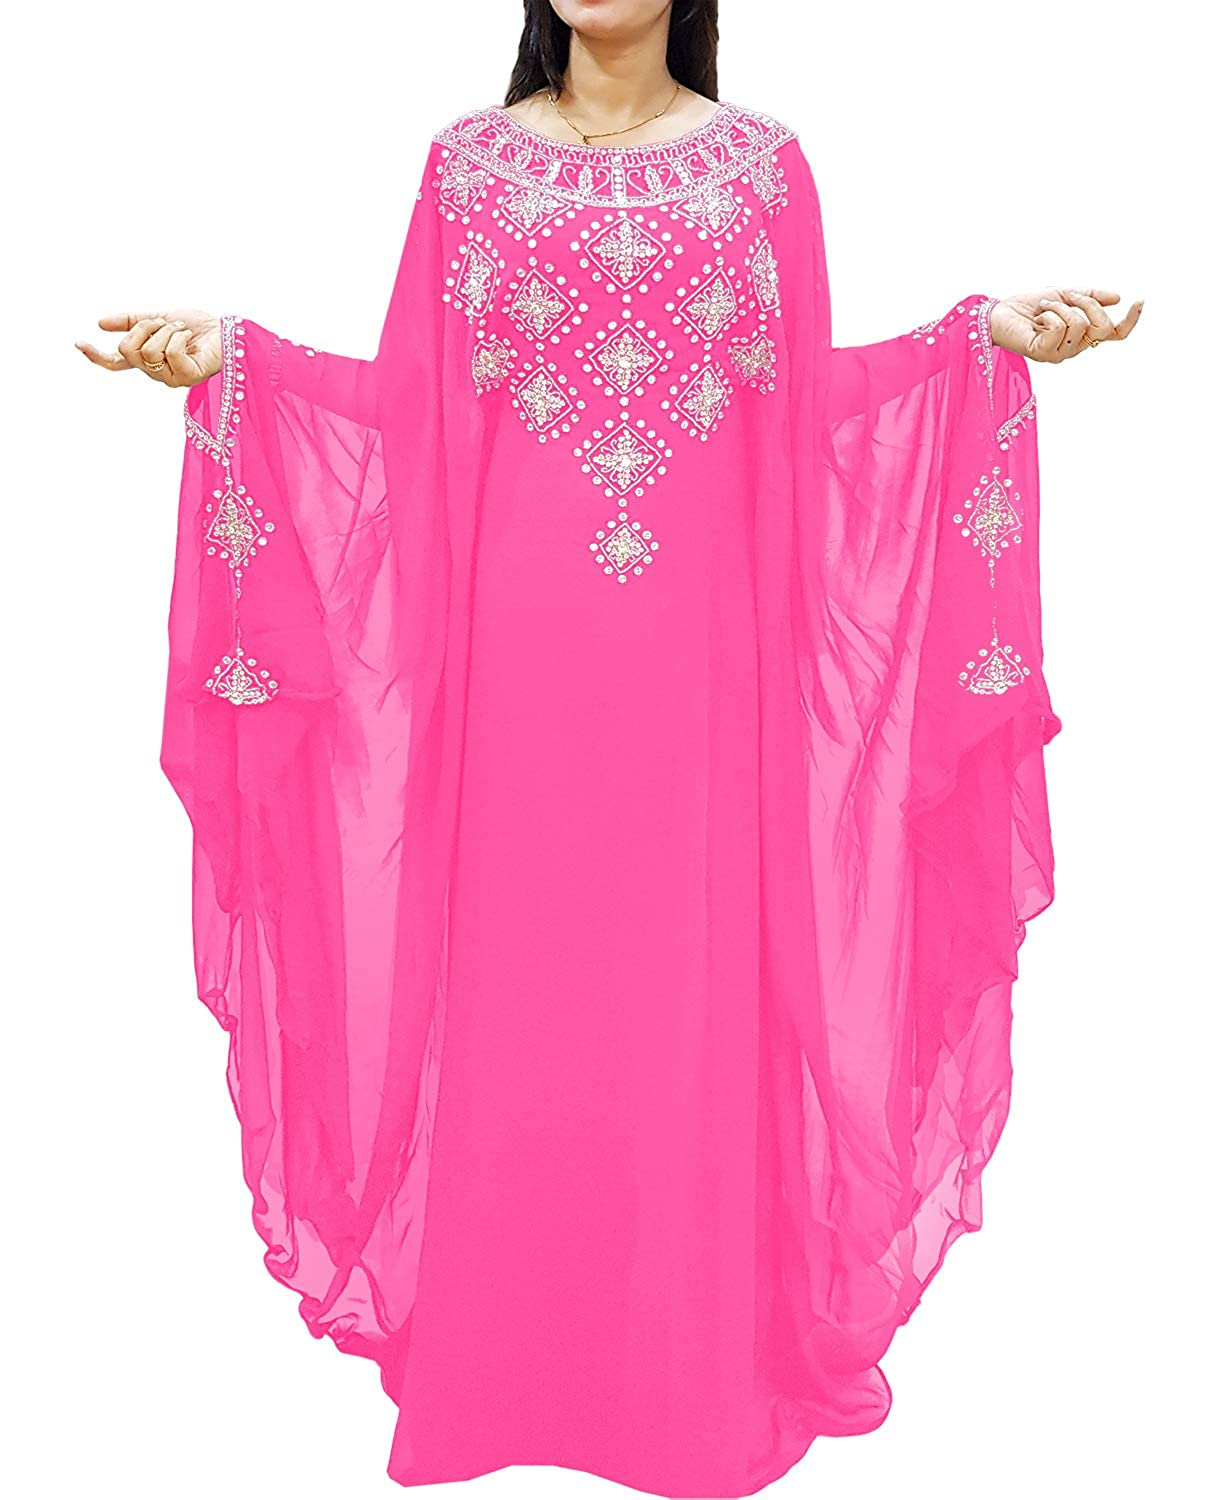 Baby Pink African Boutique Long Sleeve Plus Size Beaded Mgoldccan Kaftans African Dresses for Women